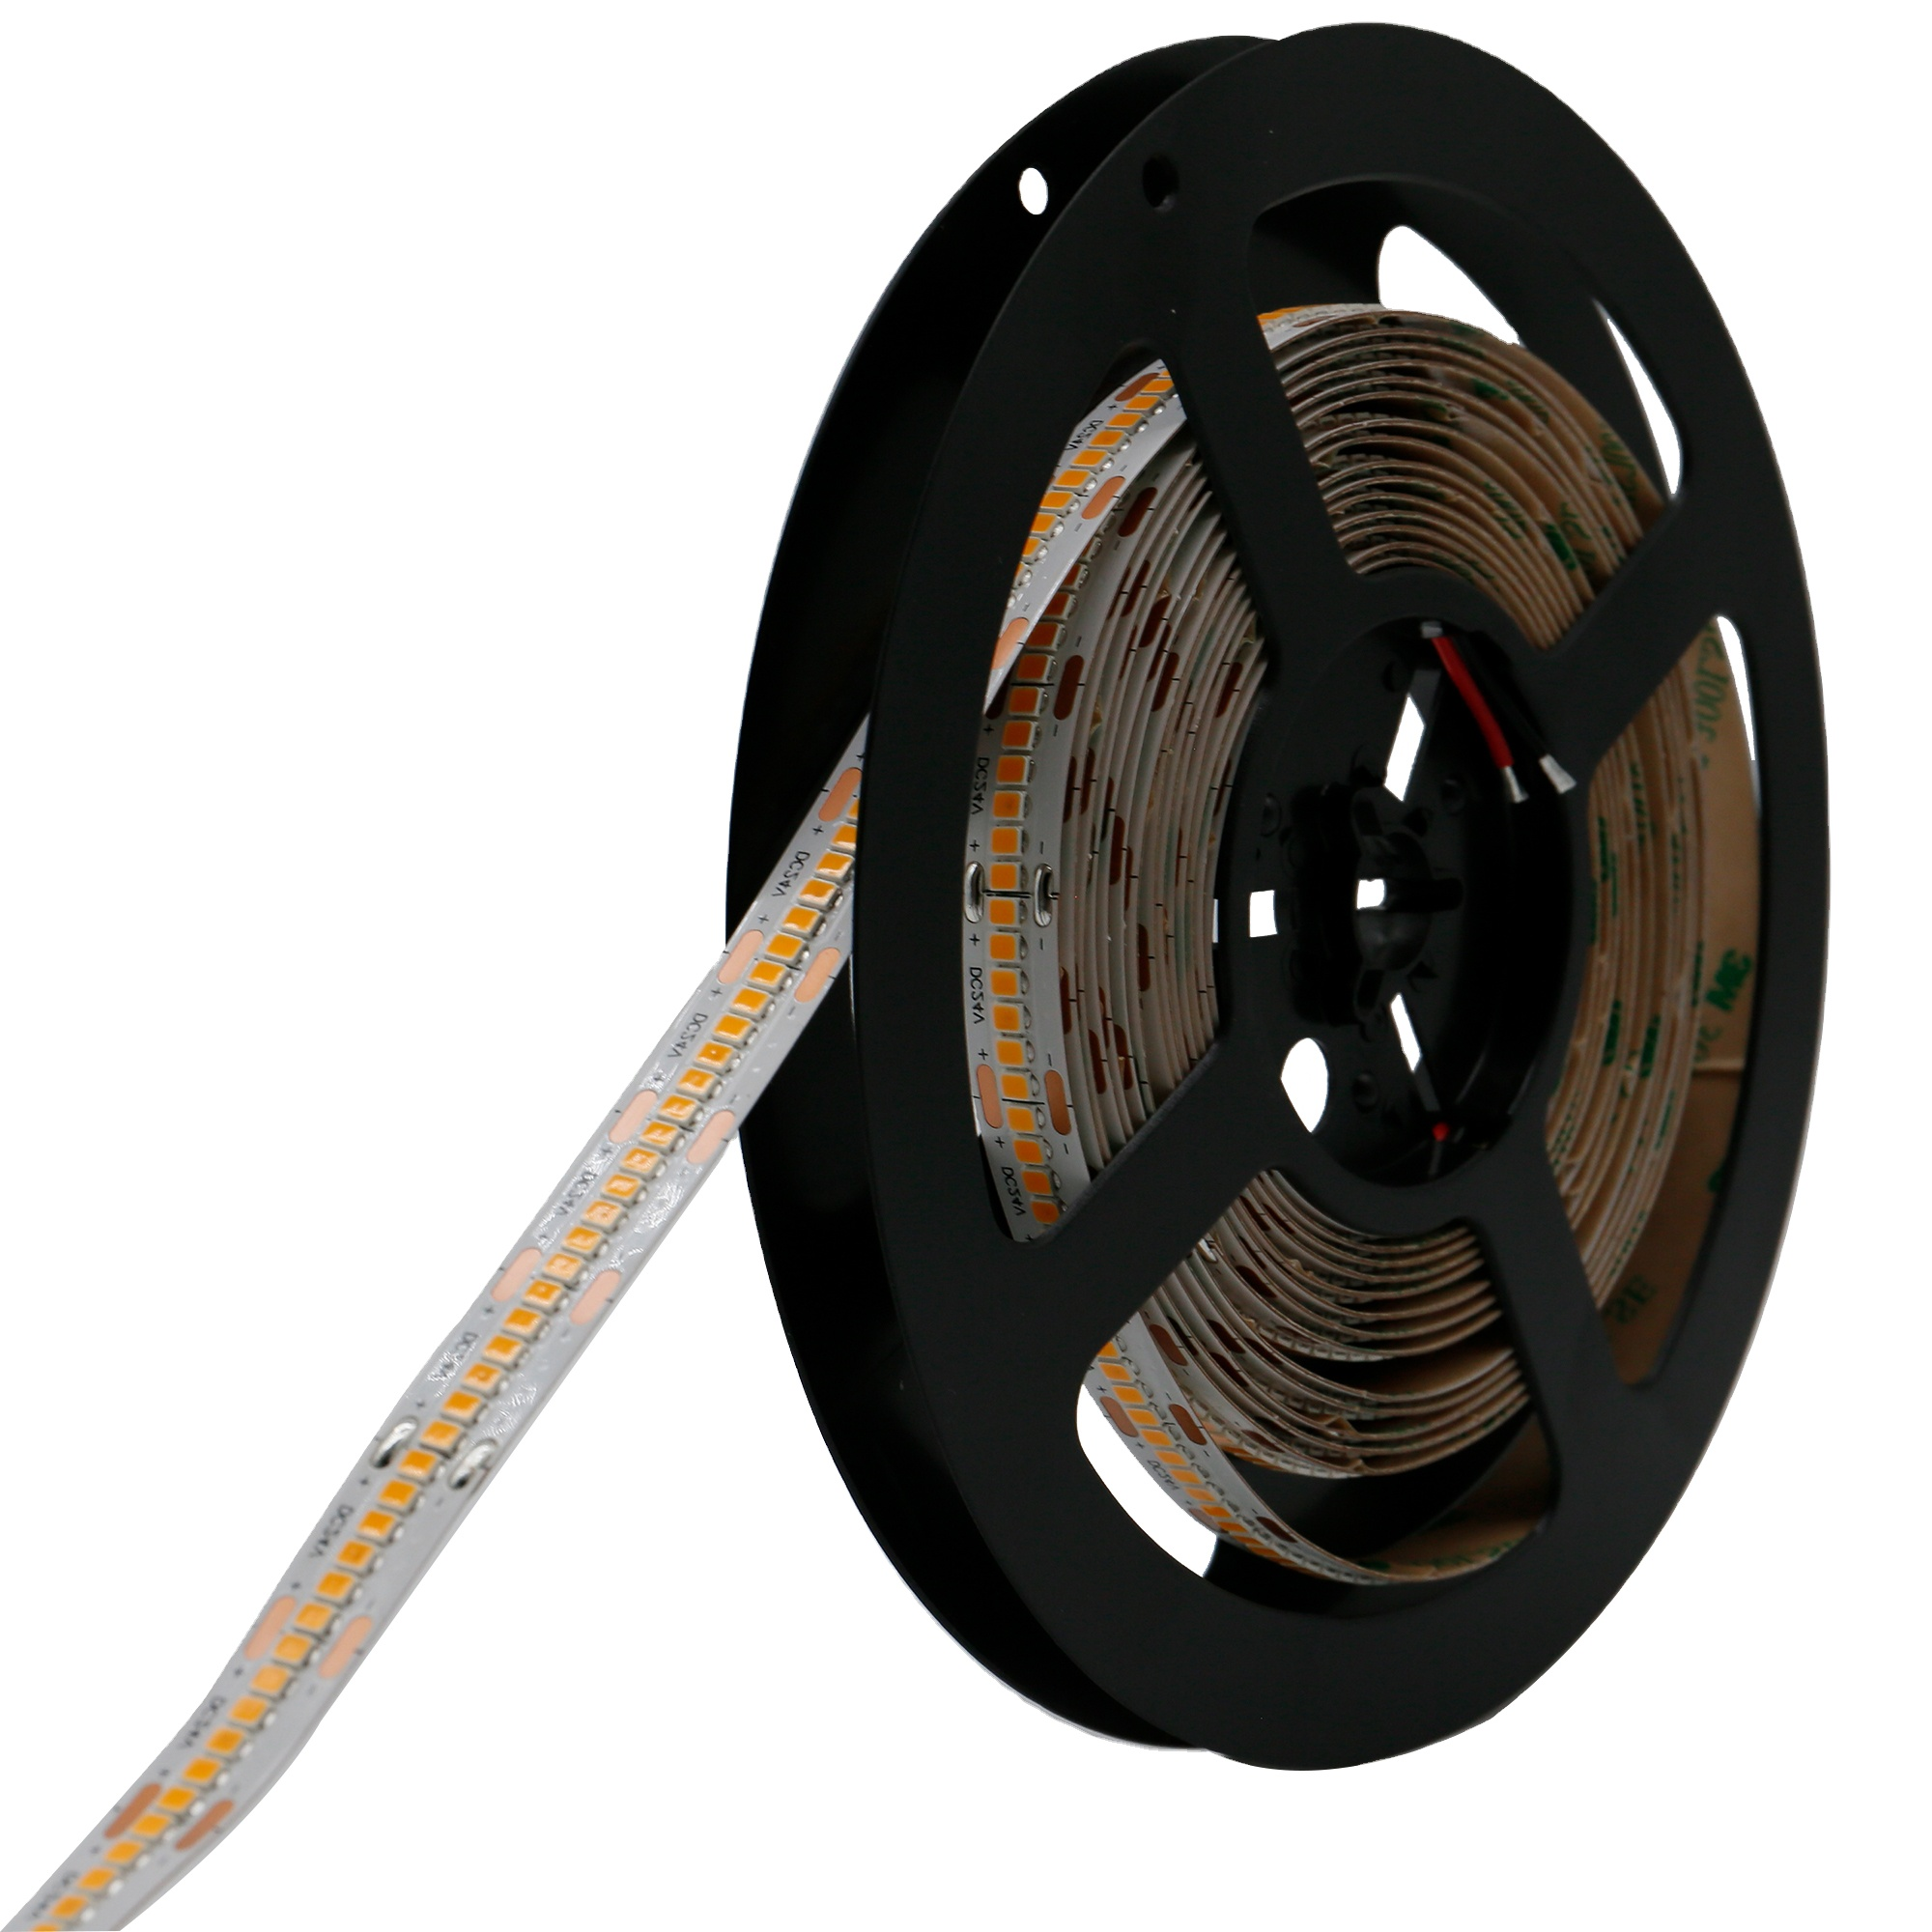 Dot-free No Voltage Drop Built-in IC 20m Length Strip <strong>Light</strong> <strong>LED</strong> SMD2835 300LEDs/m 24VDC Constant Current